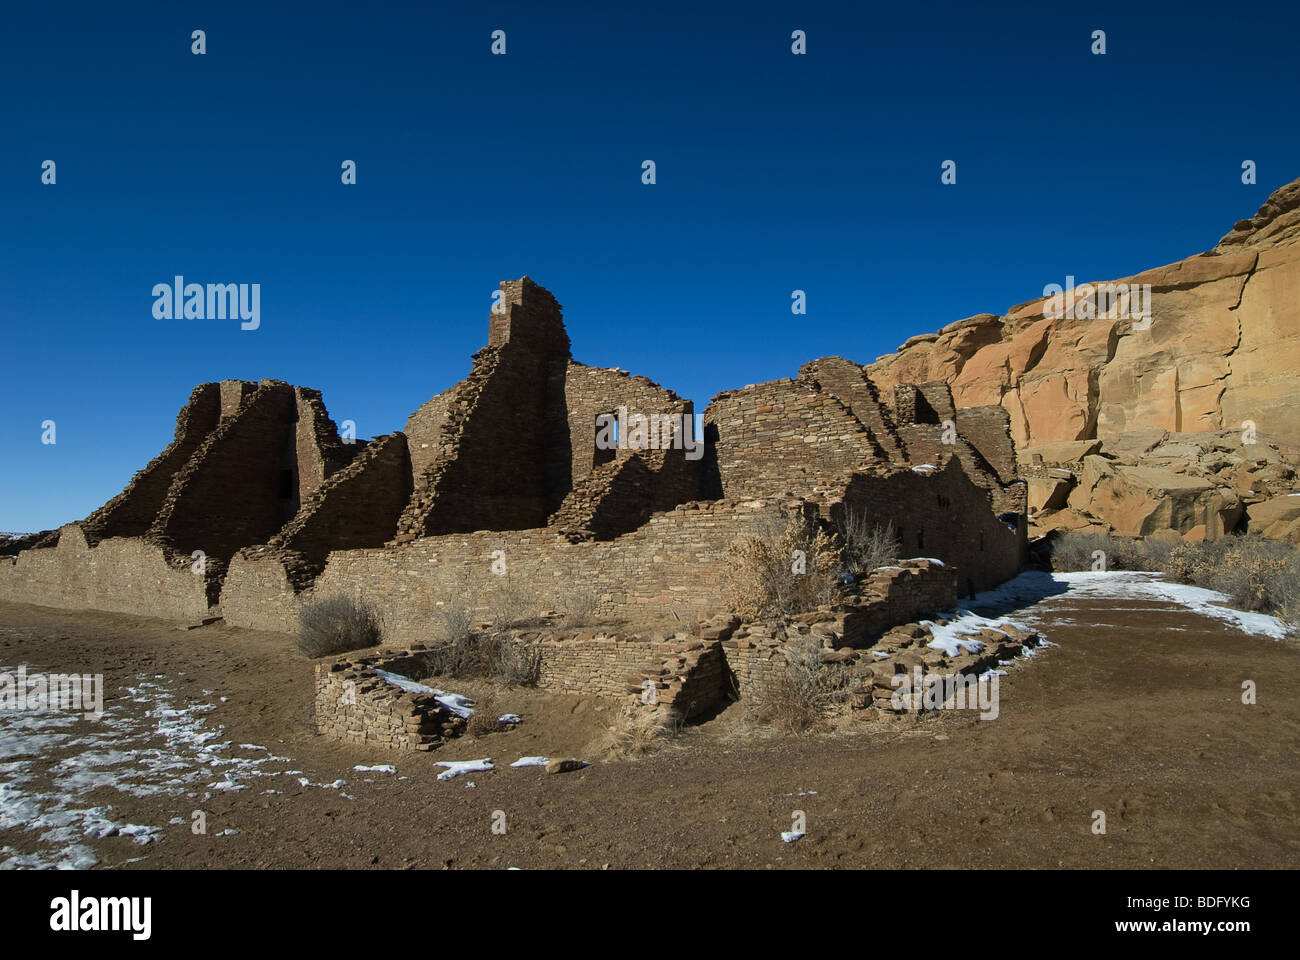 Chacoan Culture National Historical Park Chaco Canyon New Mexico - Stock Image